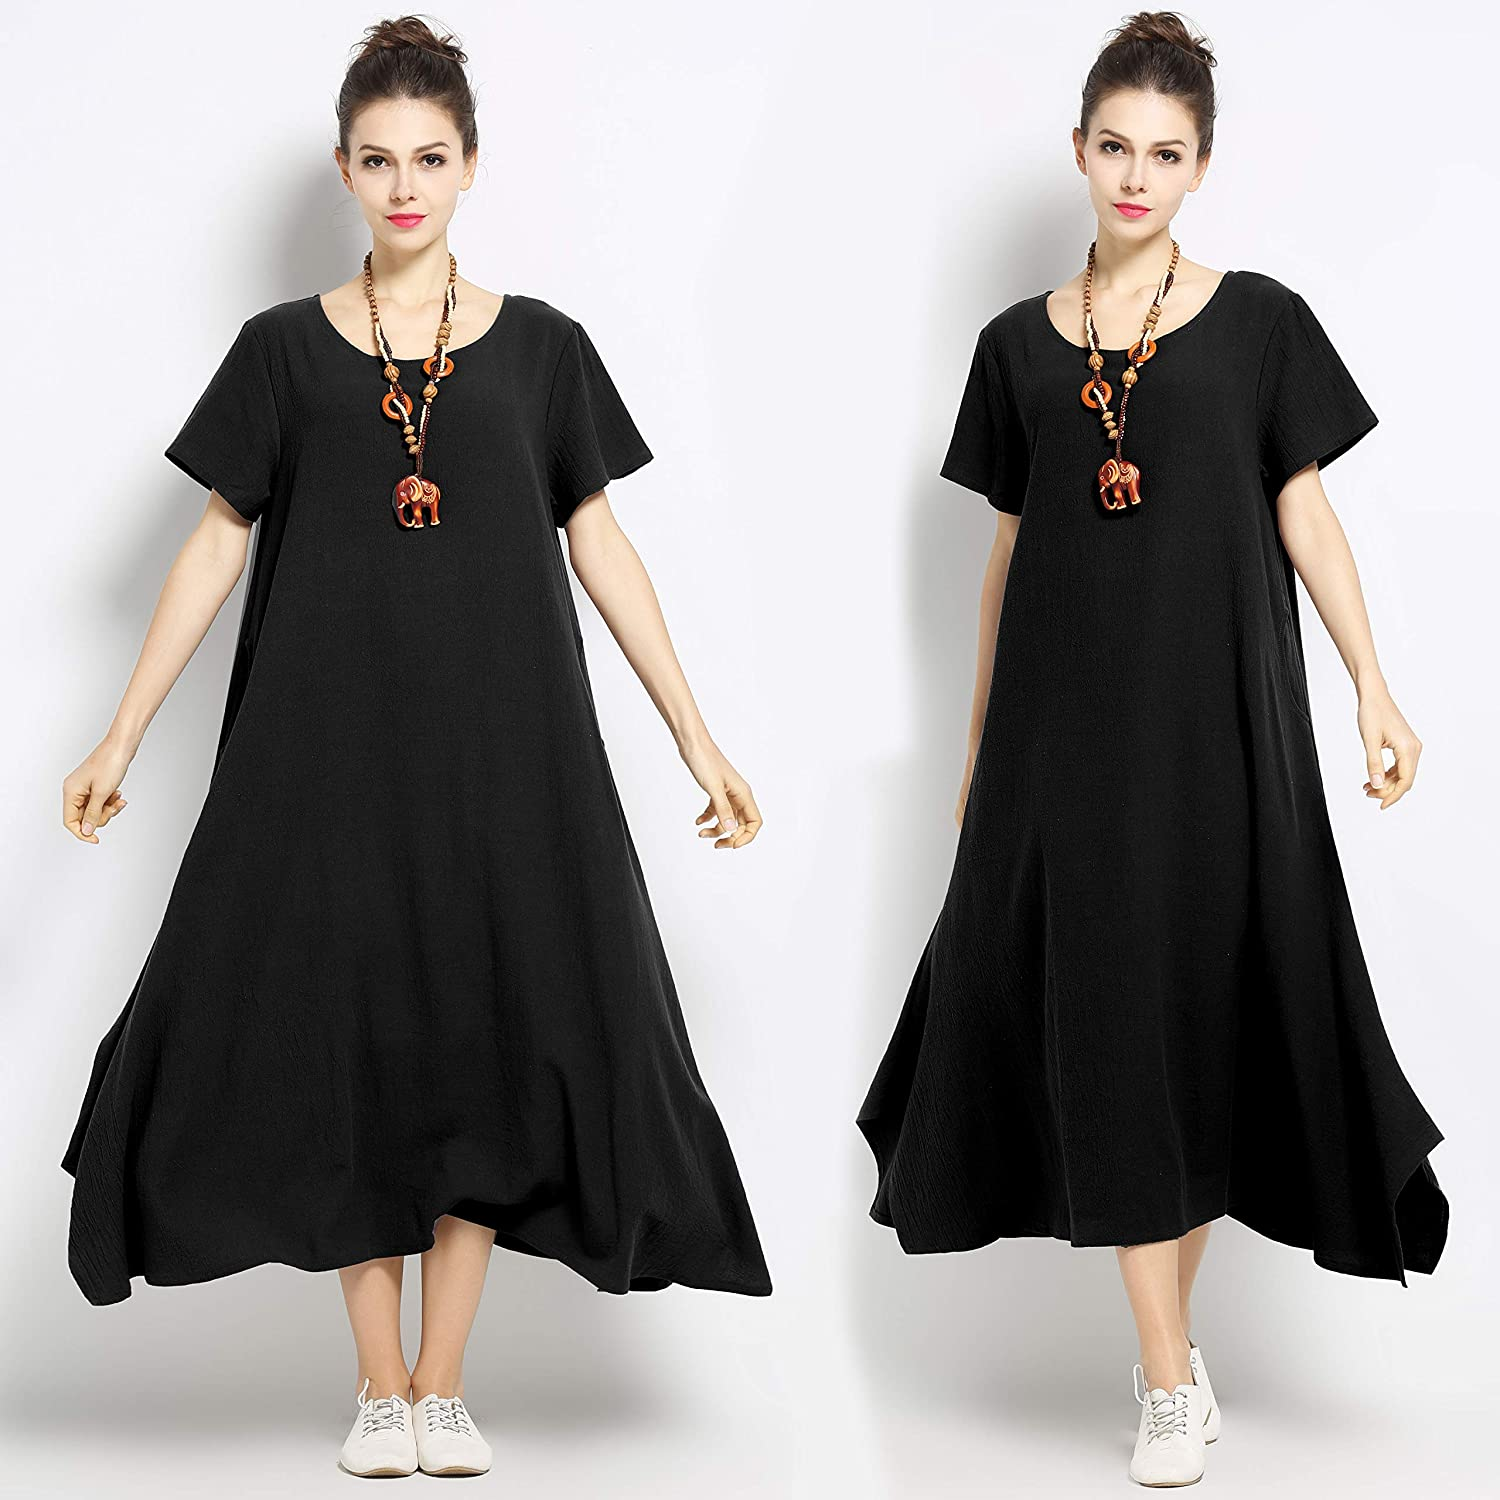 a1d342cb3bf67 Anysize Linen Cotton Soft Loose Spring Summer Dress Plus Size Clothing  F126A at Amazon Women s Clothing store